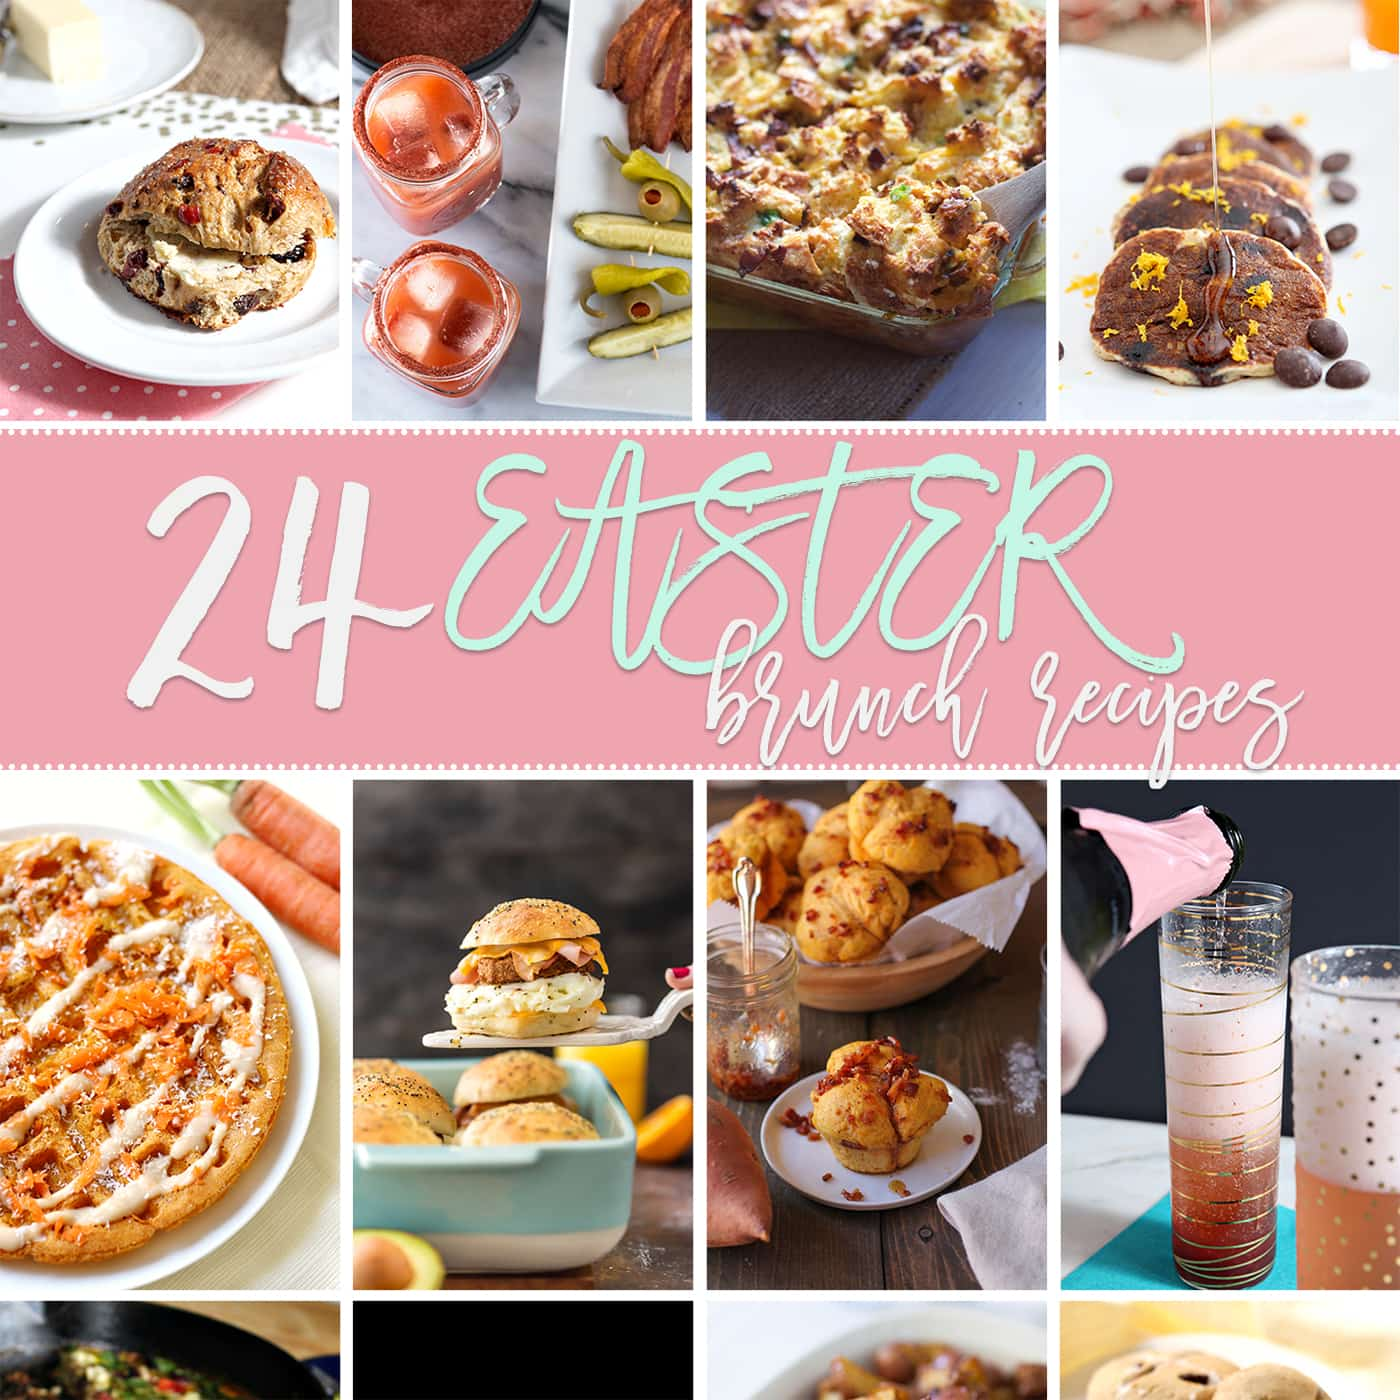 Easter is this Sunday! Drool over these 24 Easter Brunch Recipes and use them for your Easter Sunday get-together. Featuring sweet and savory entrees, sides and drinks, this brunch food round-up offers direction and inspiration while planning your menu!